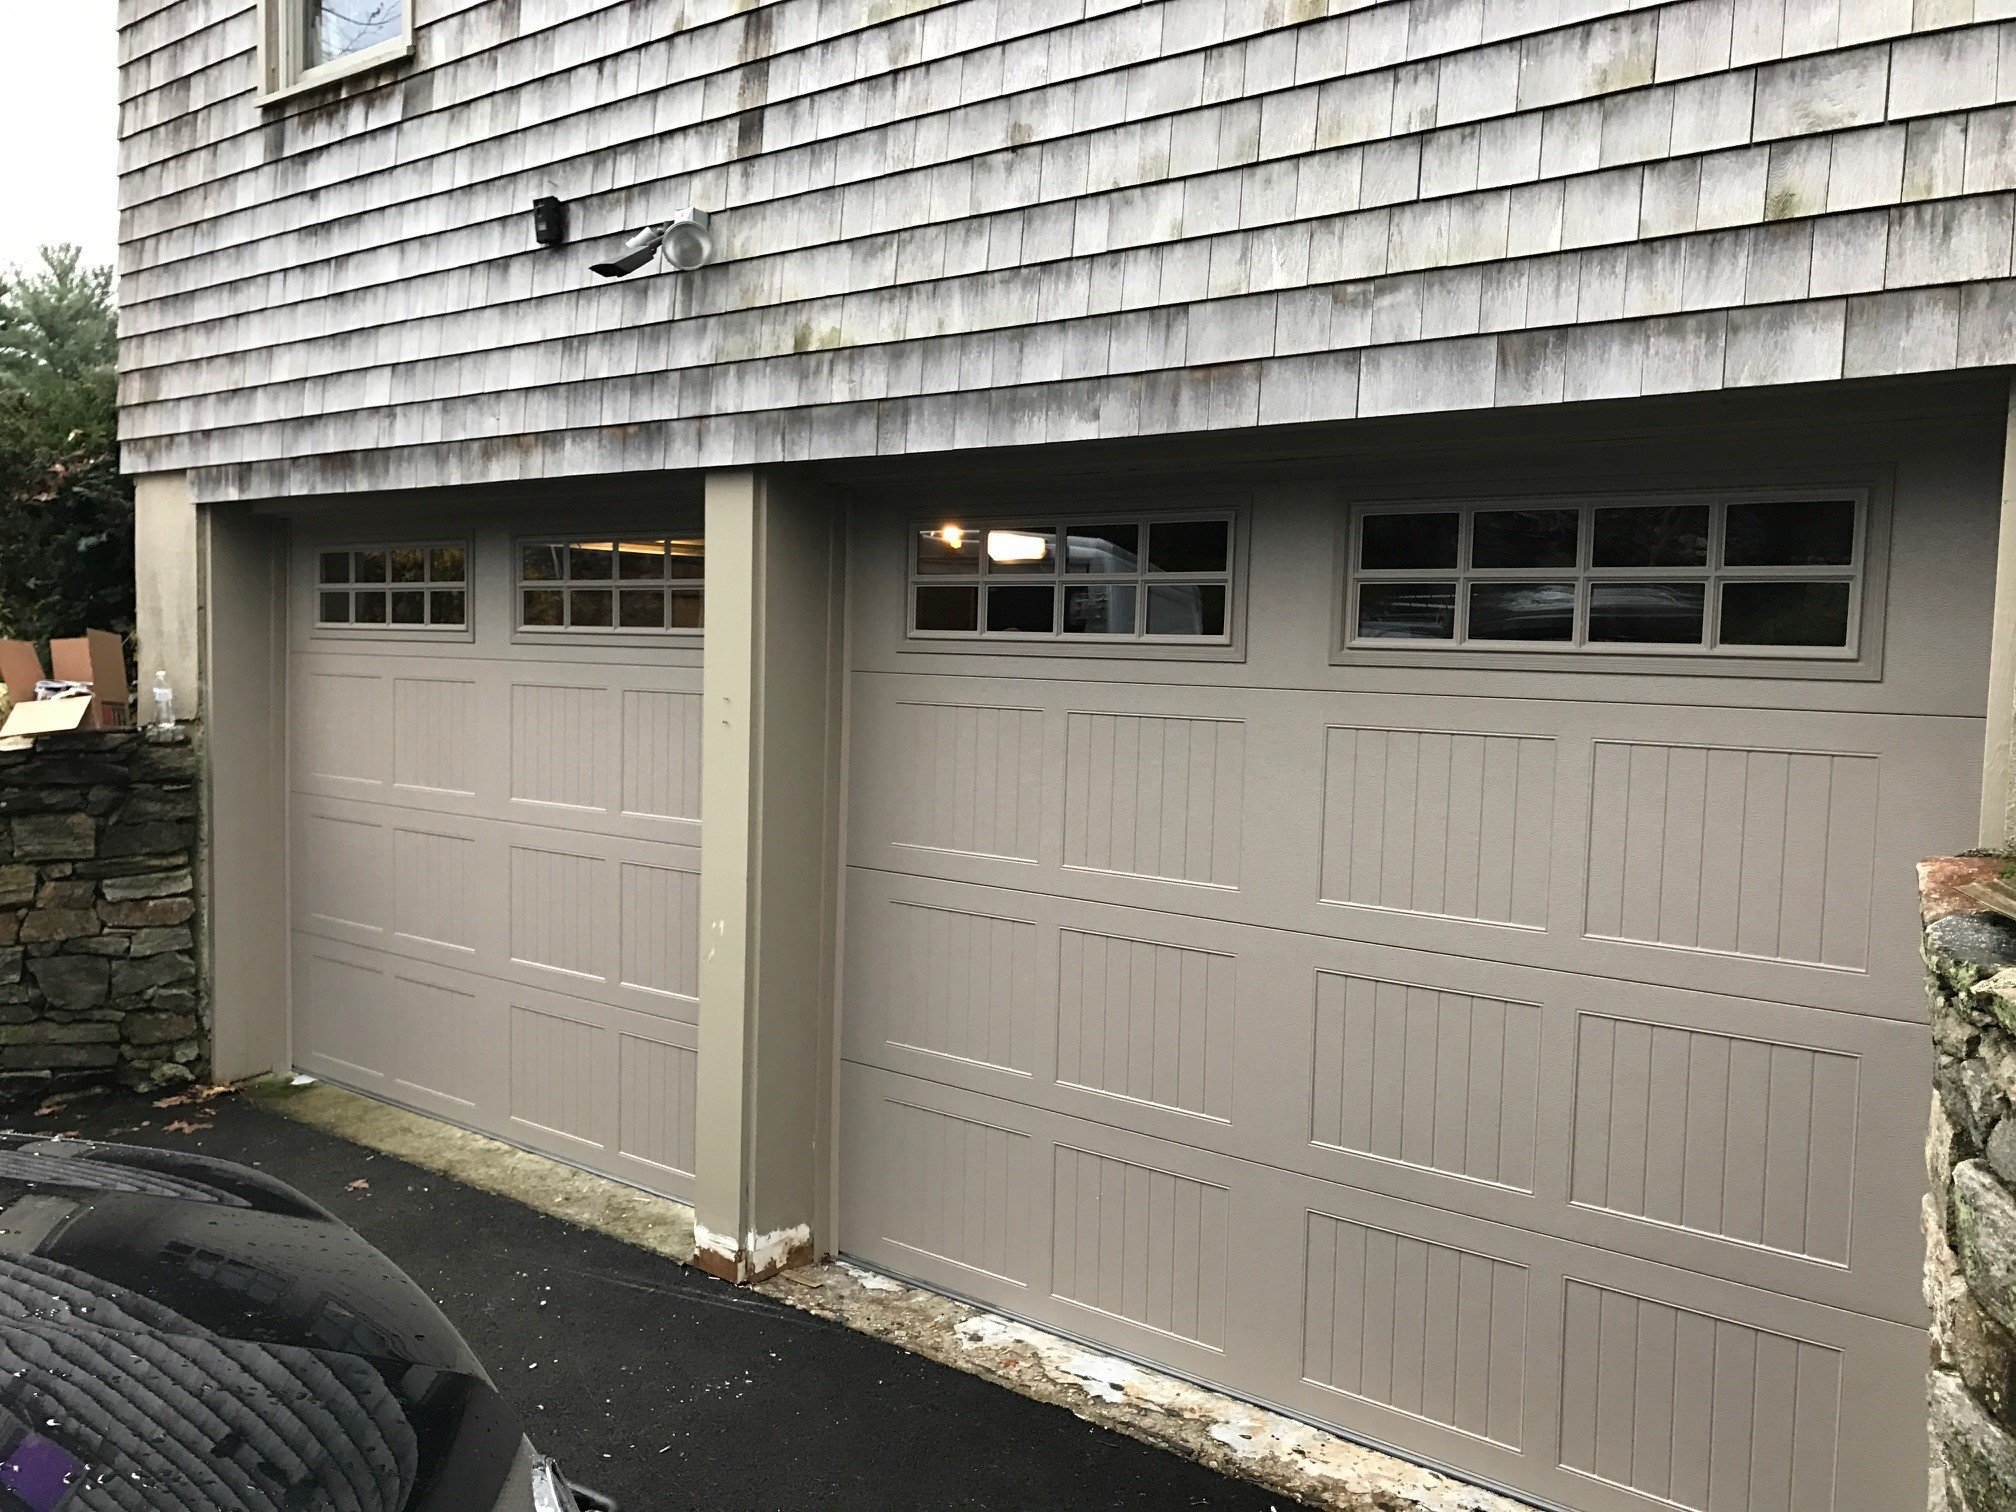 Contact For Garage Repair Greenwich Bethel Amp Darien Ct